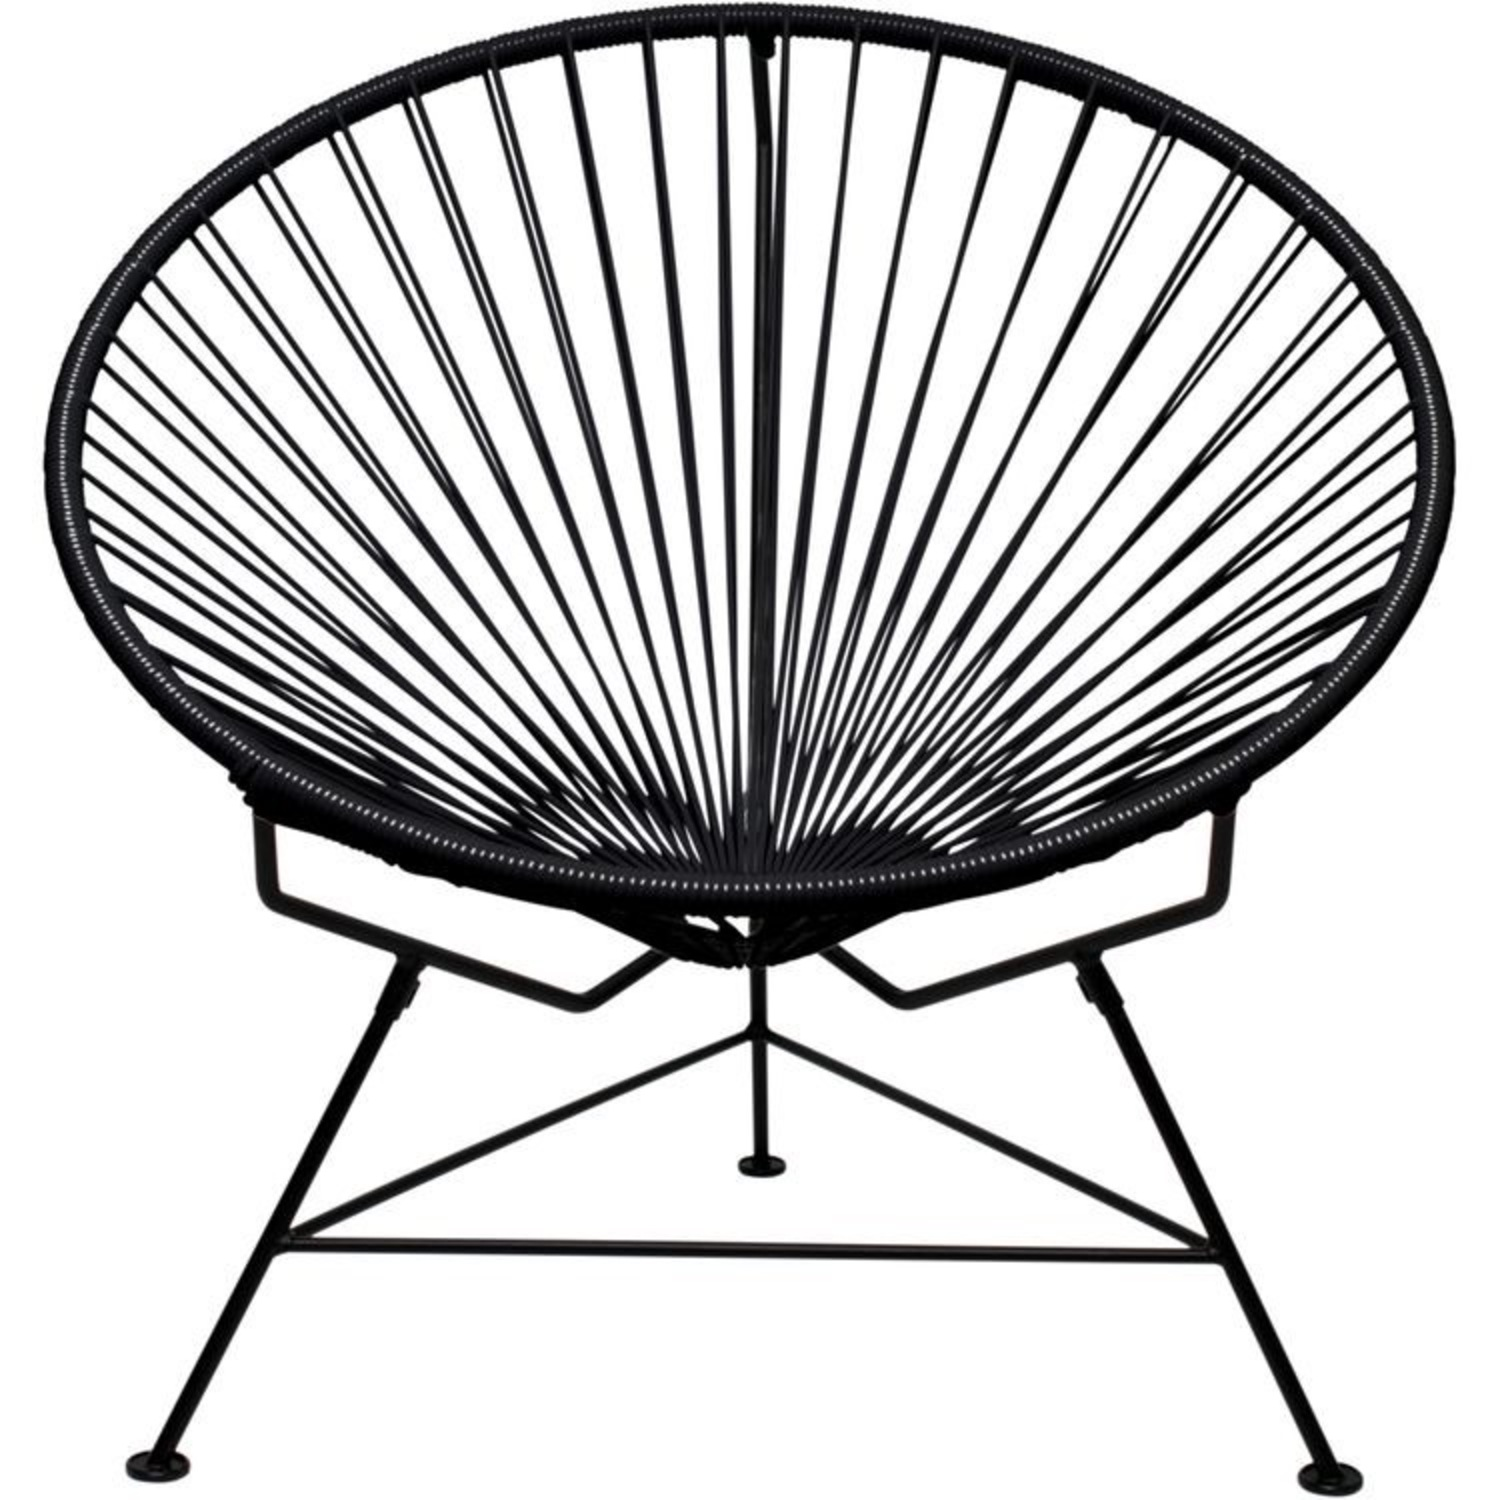 Crate & Barrel Black Spindle Lounge Chair - image-2